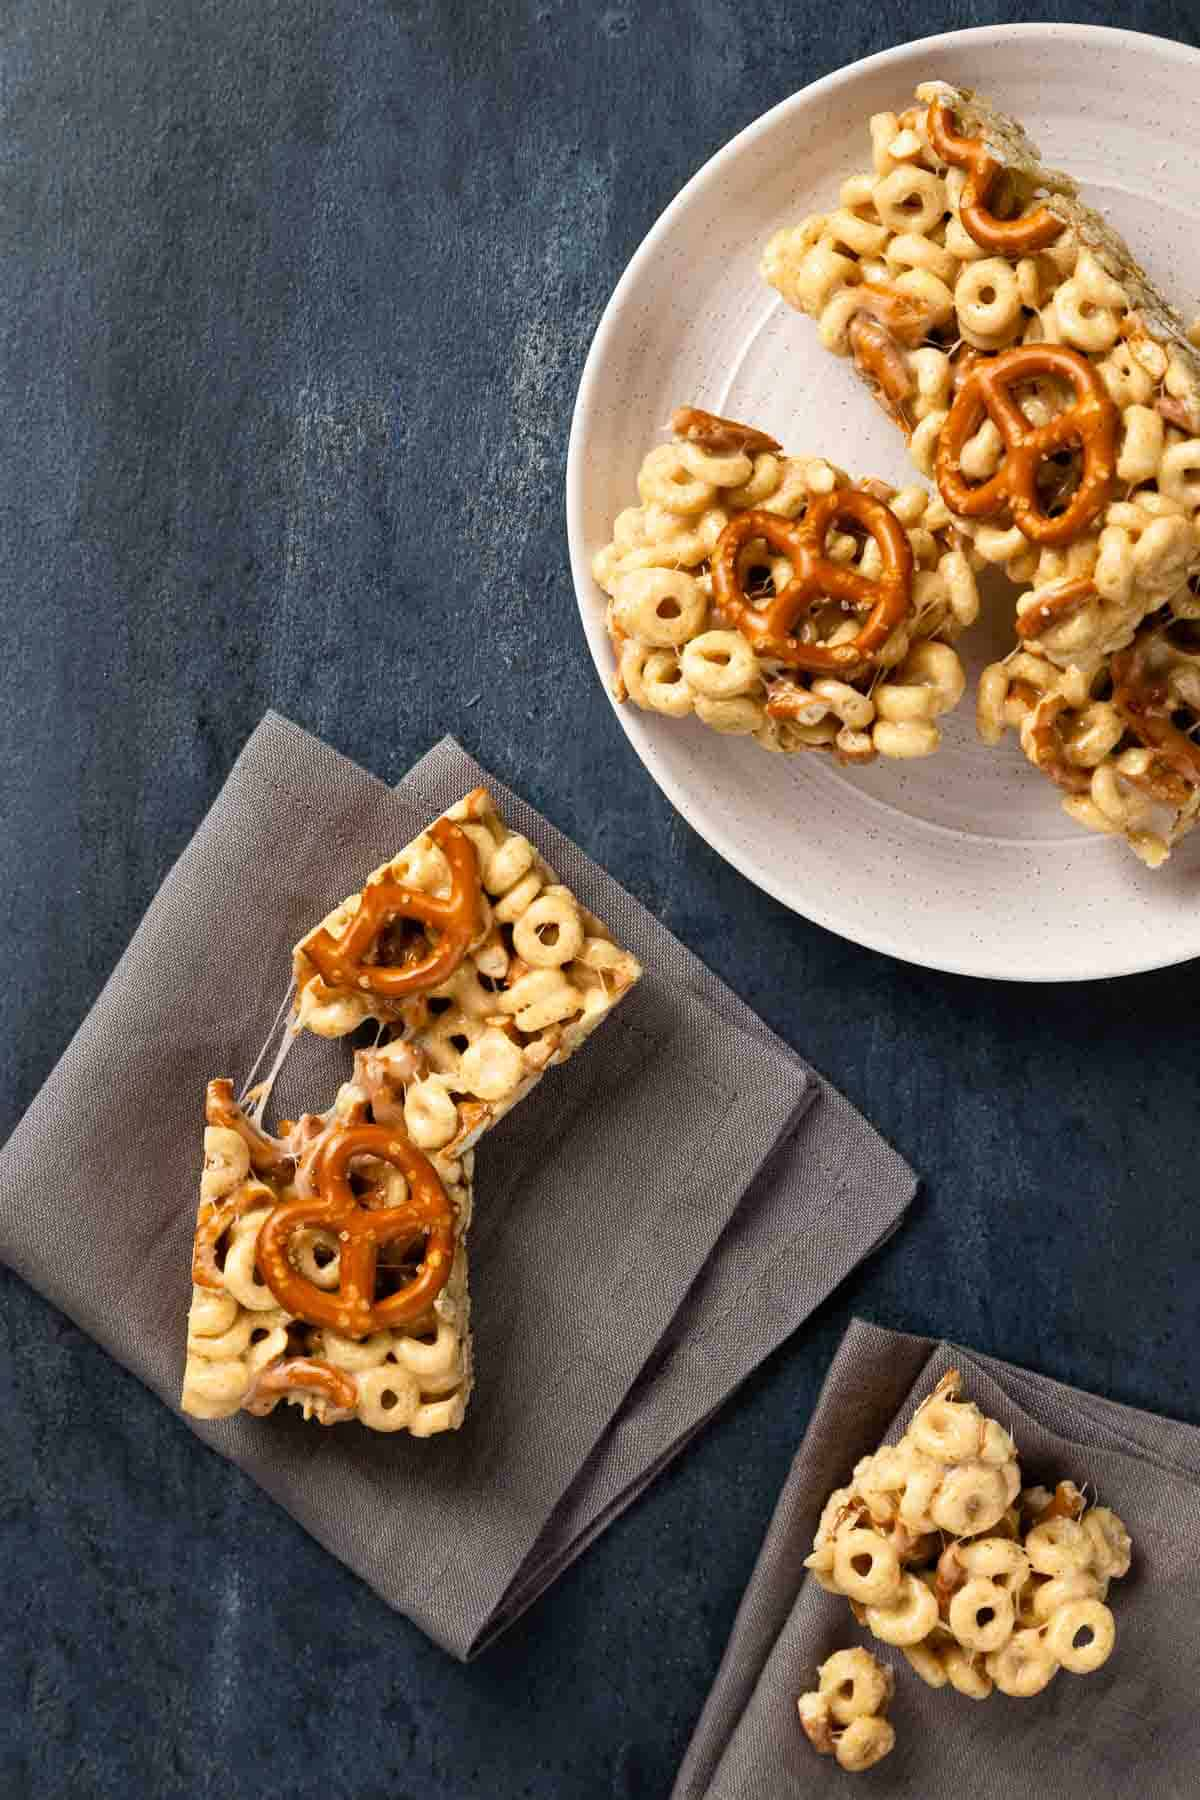 Cereal and pretzel bars on a white plate. One bar on the side on a black napkin.